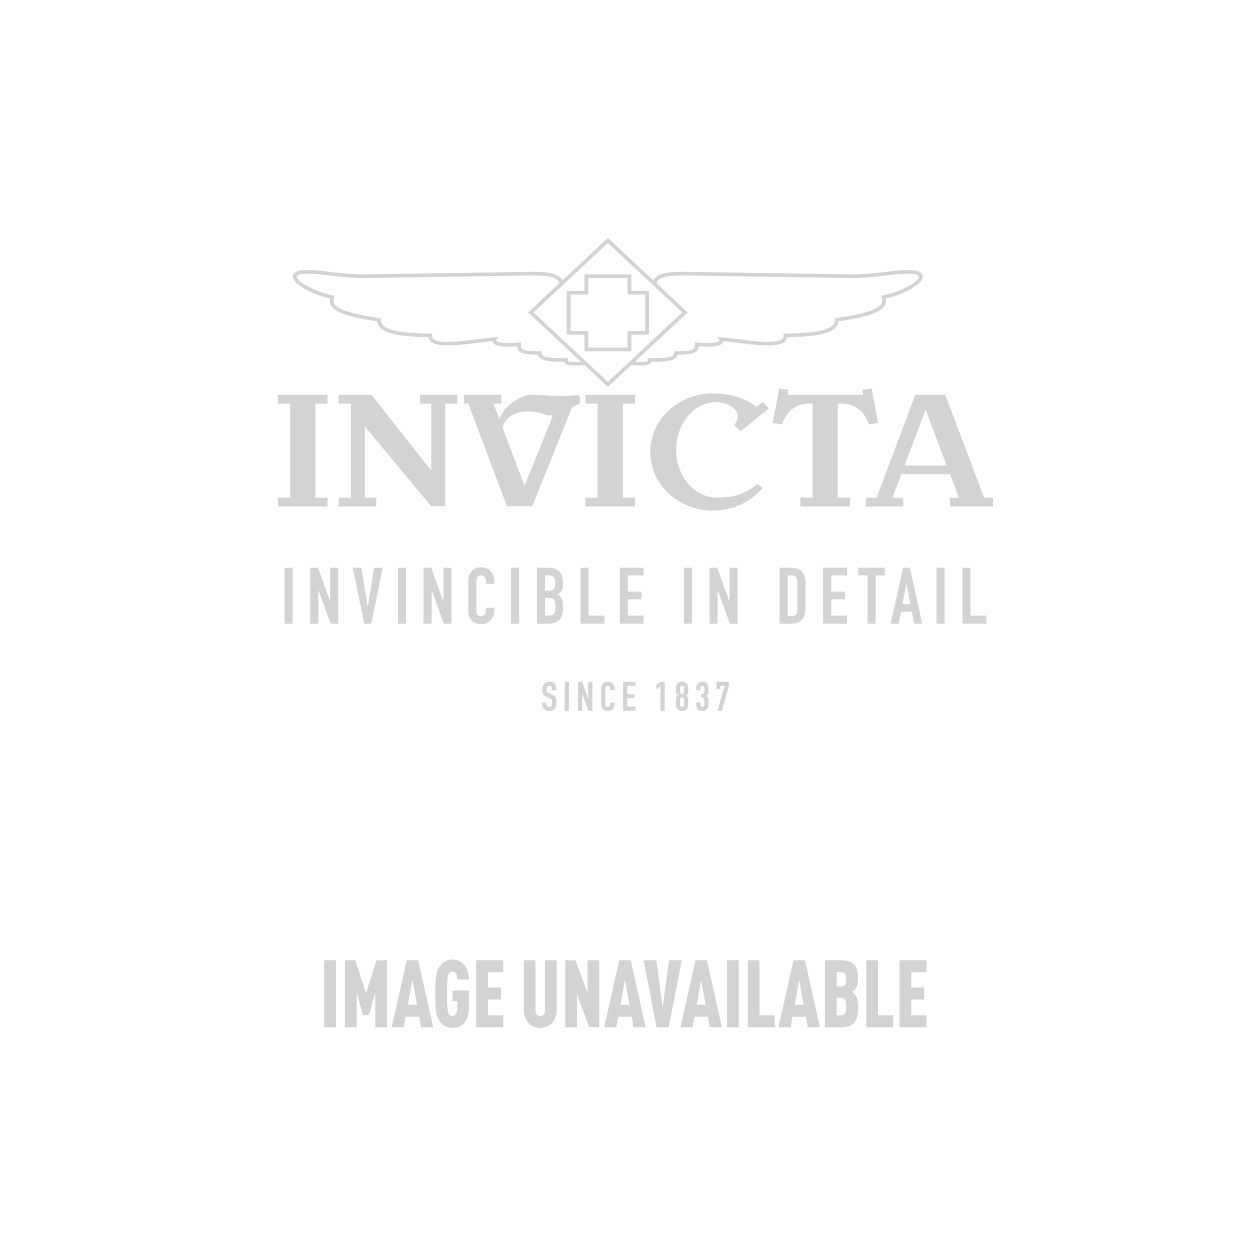 Invicta S1 Rally Quartz Watch - Gold, Stainless Steel case Stainless Steel band - Model 19429